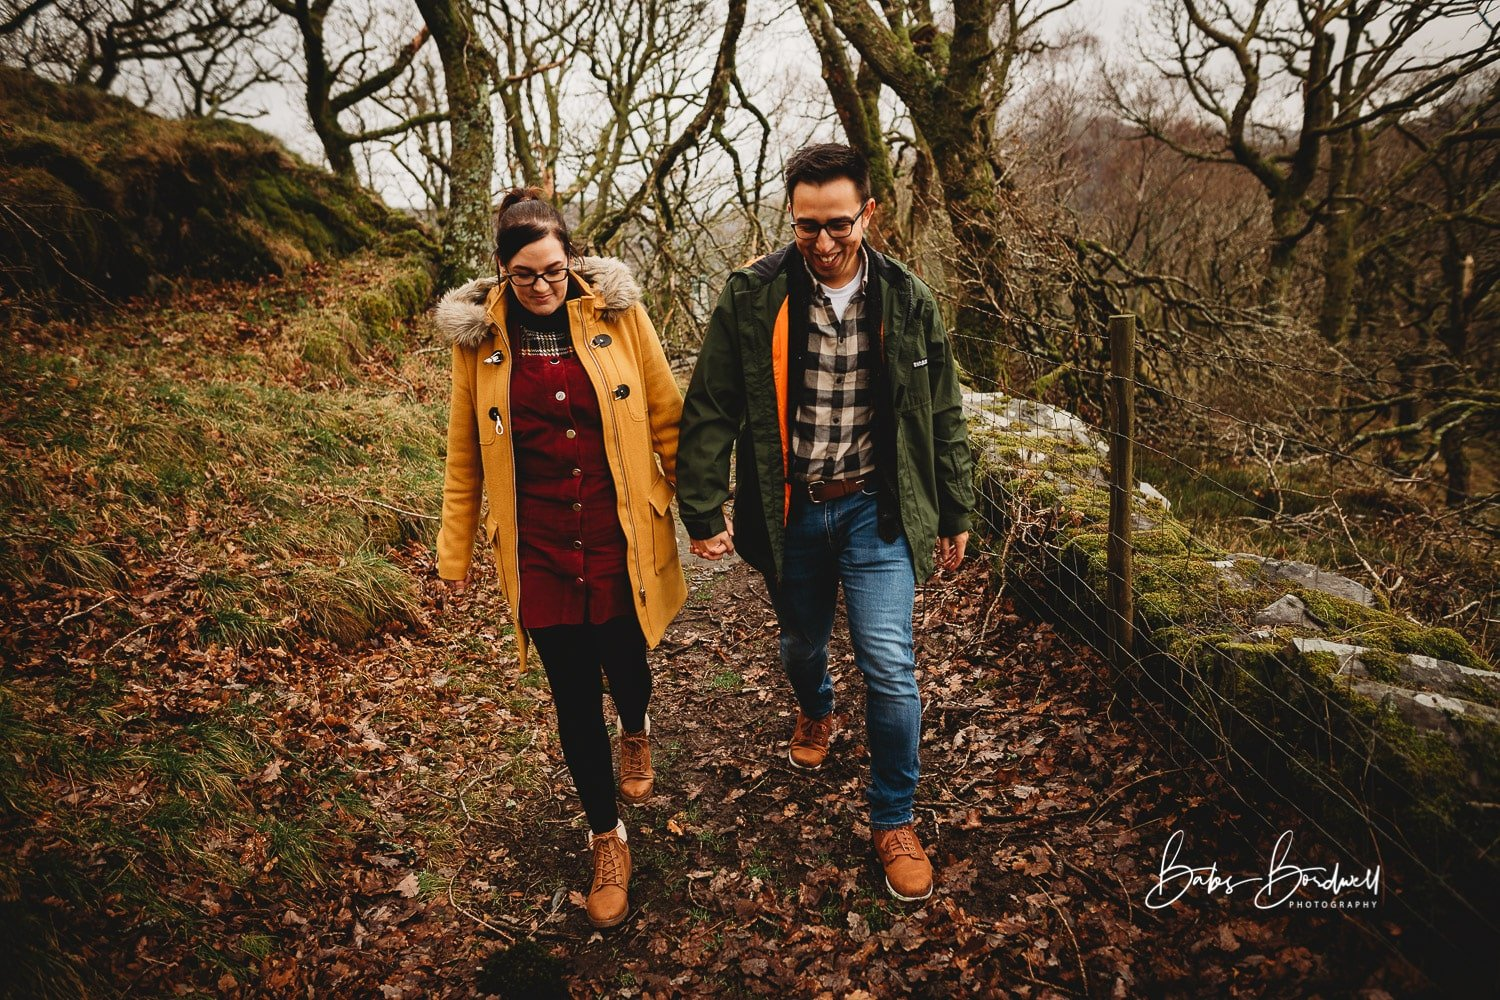 engaged couple walking on a forest path holding hands smiling